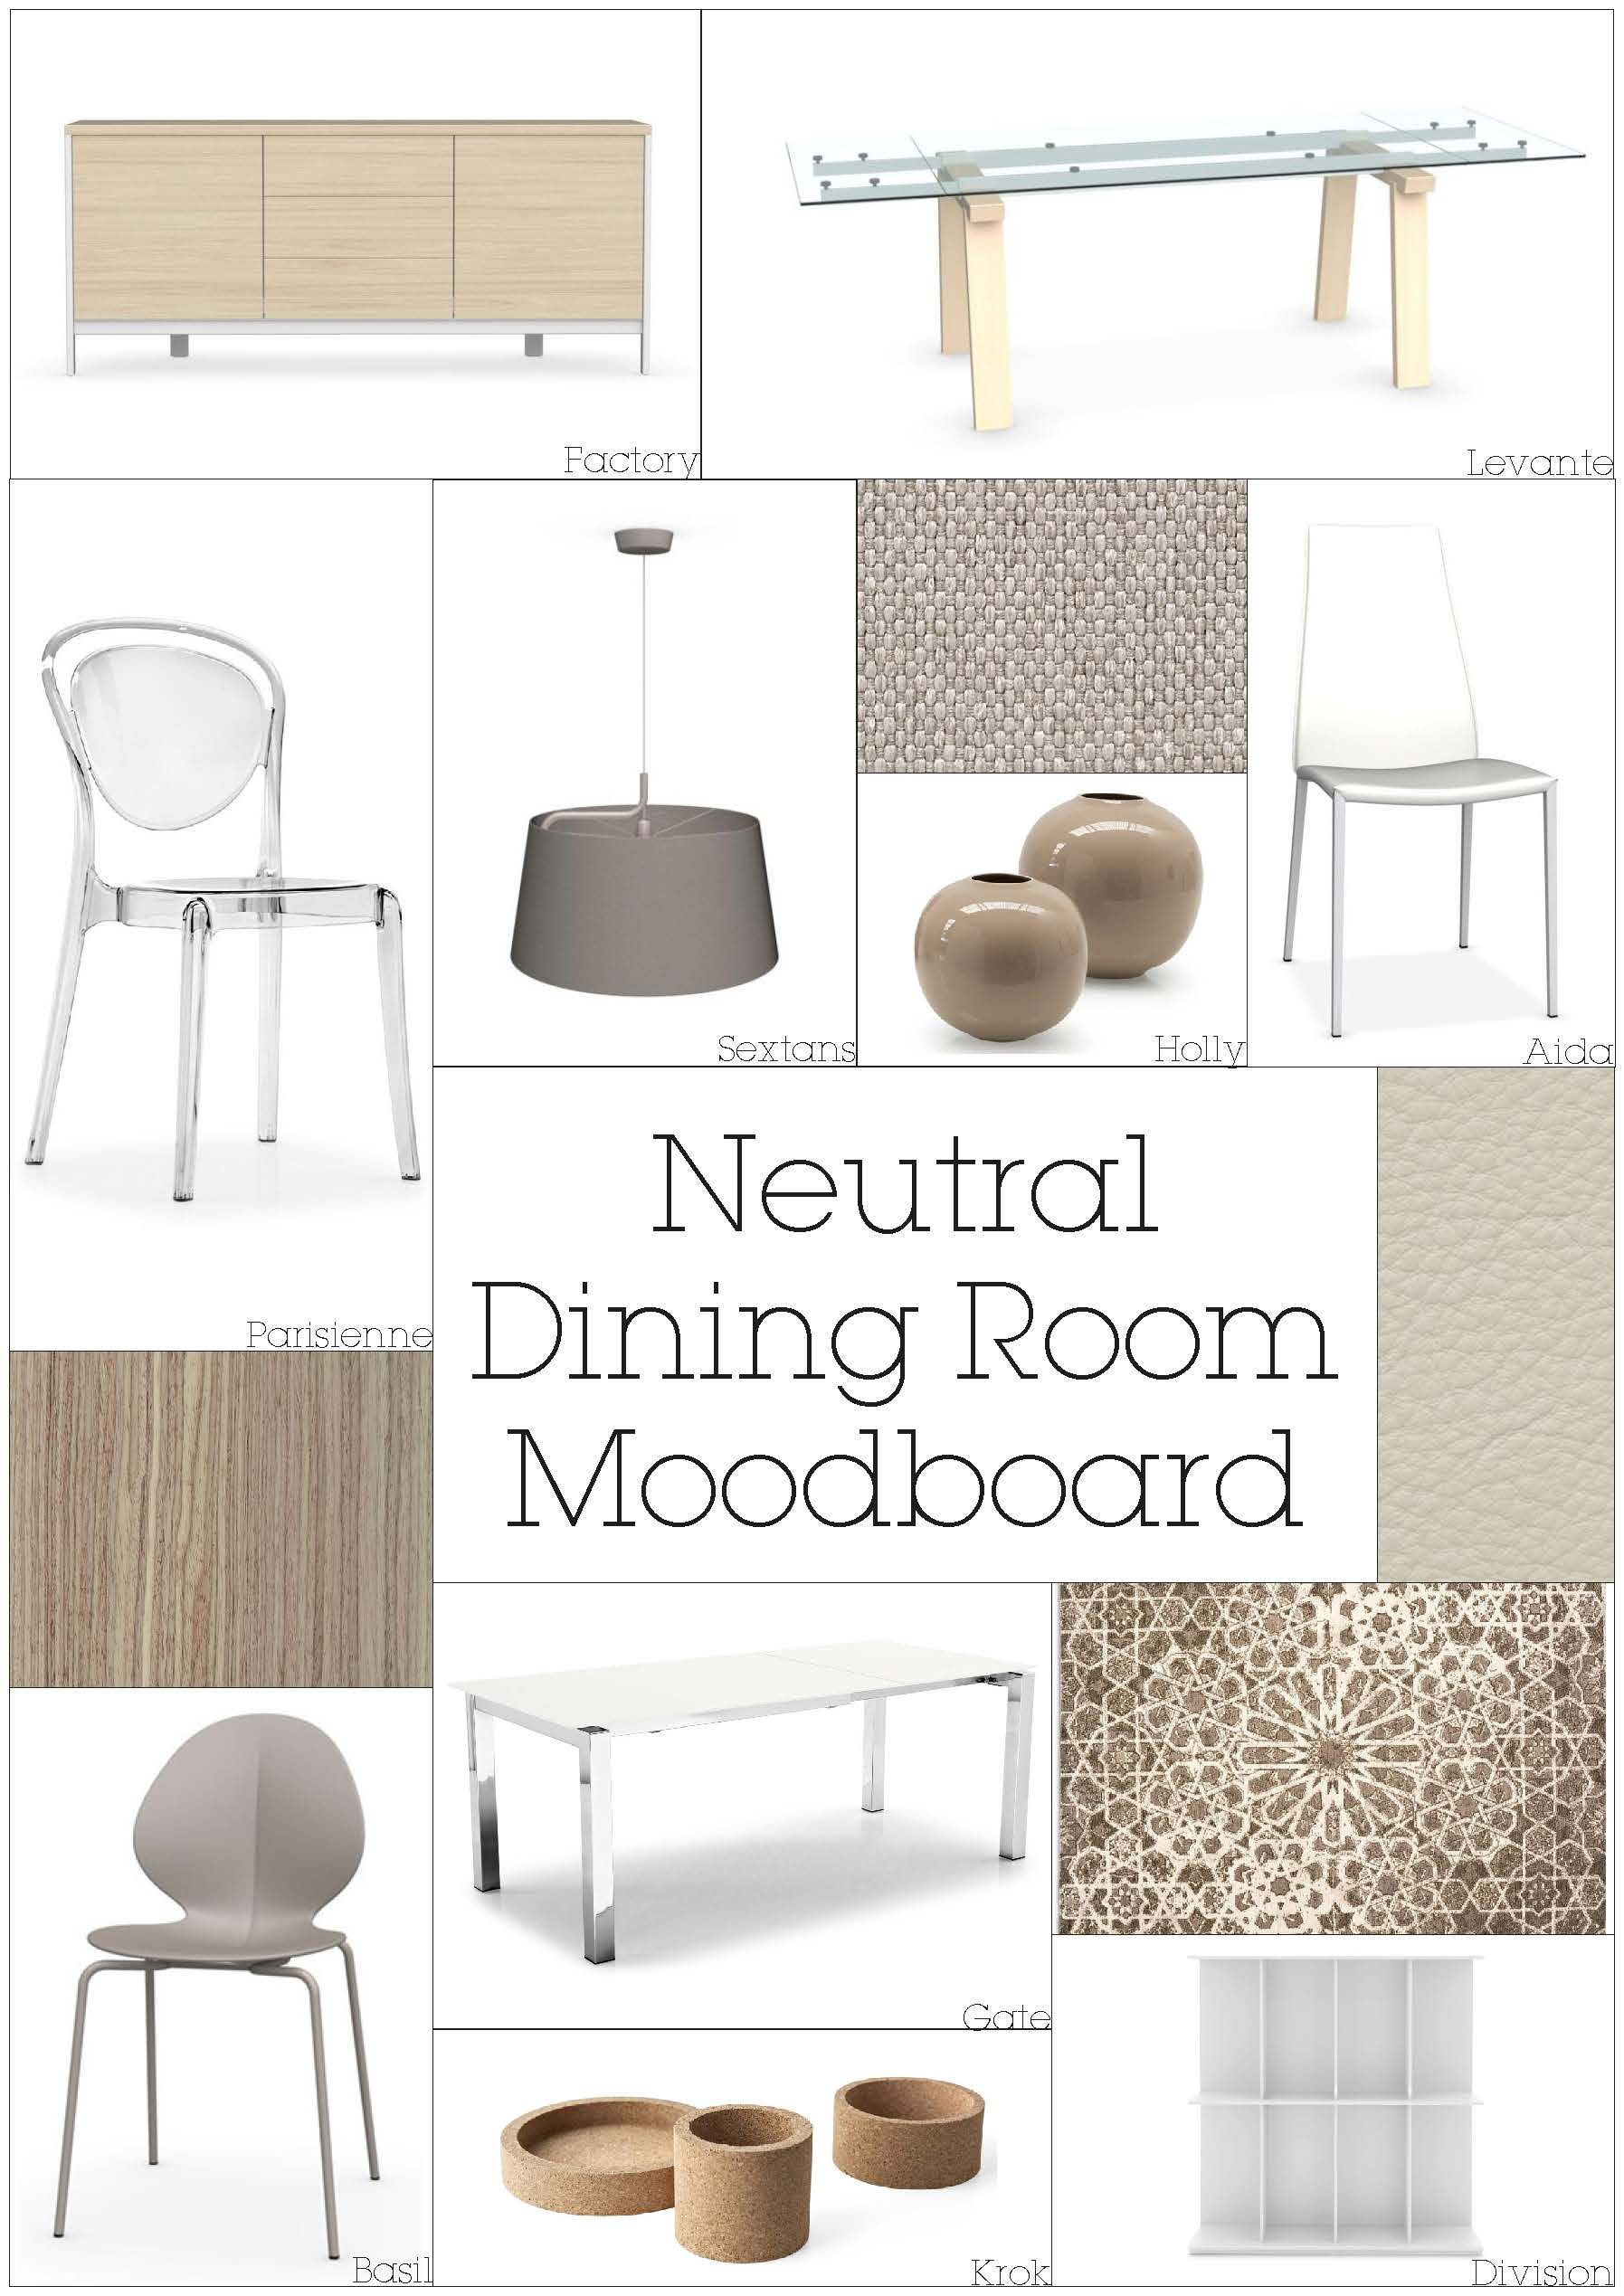 A Soothing Neutral Mood Board For A Dining Room Using Calligaris